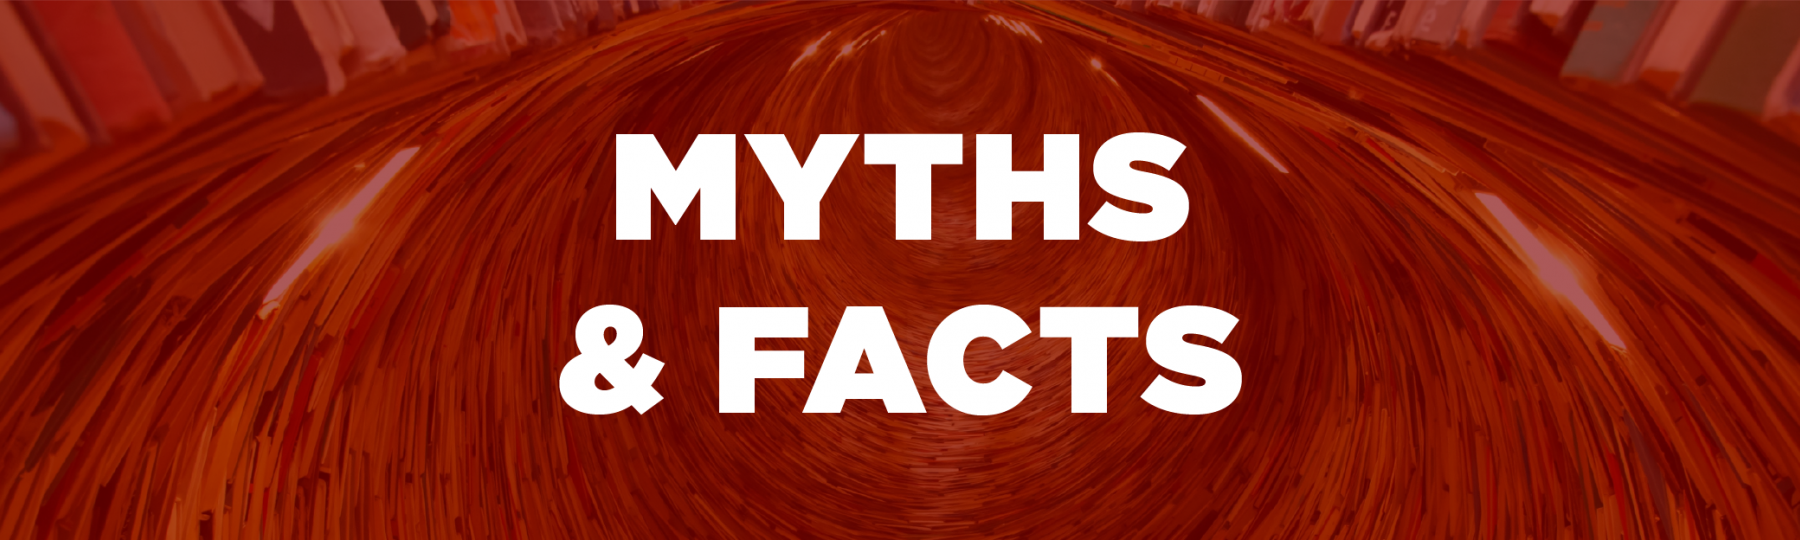 Myths and Facts about High School and Postsecondary Success